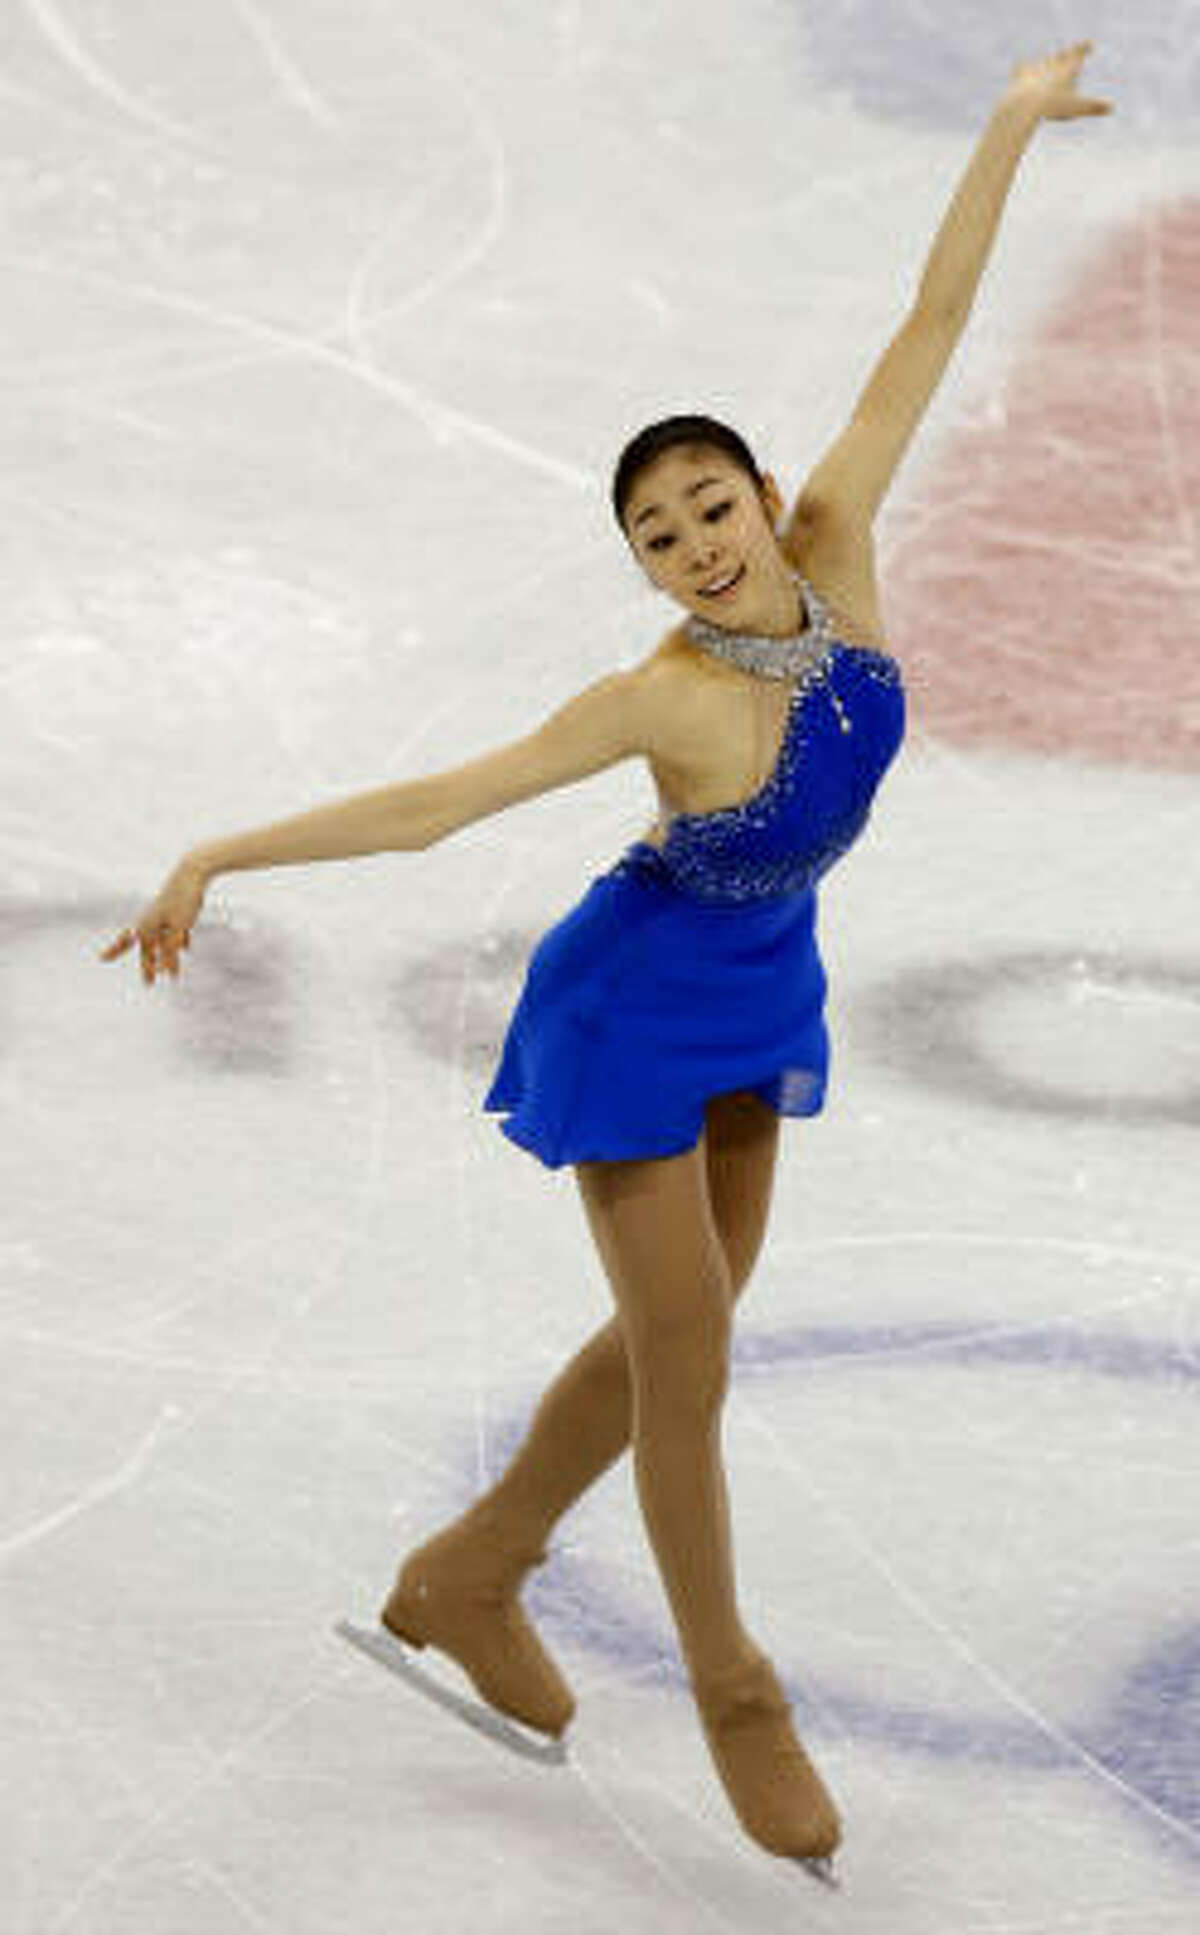 Kim Yu-na of South Korea wins the gold medal in the free program at the age of 19.